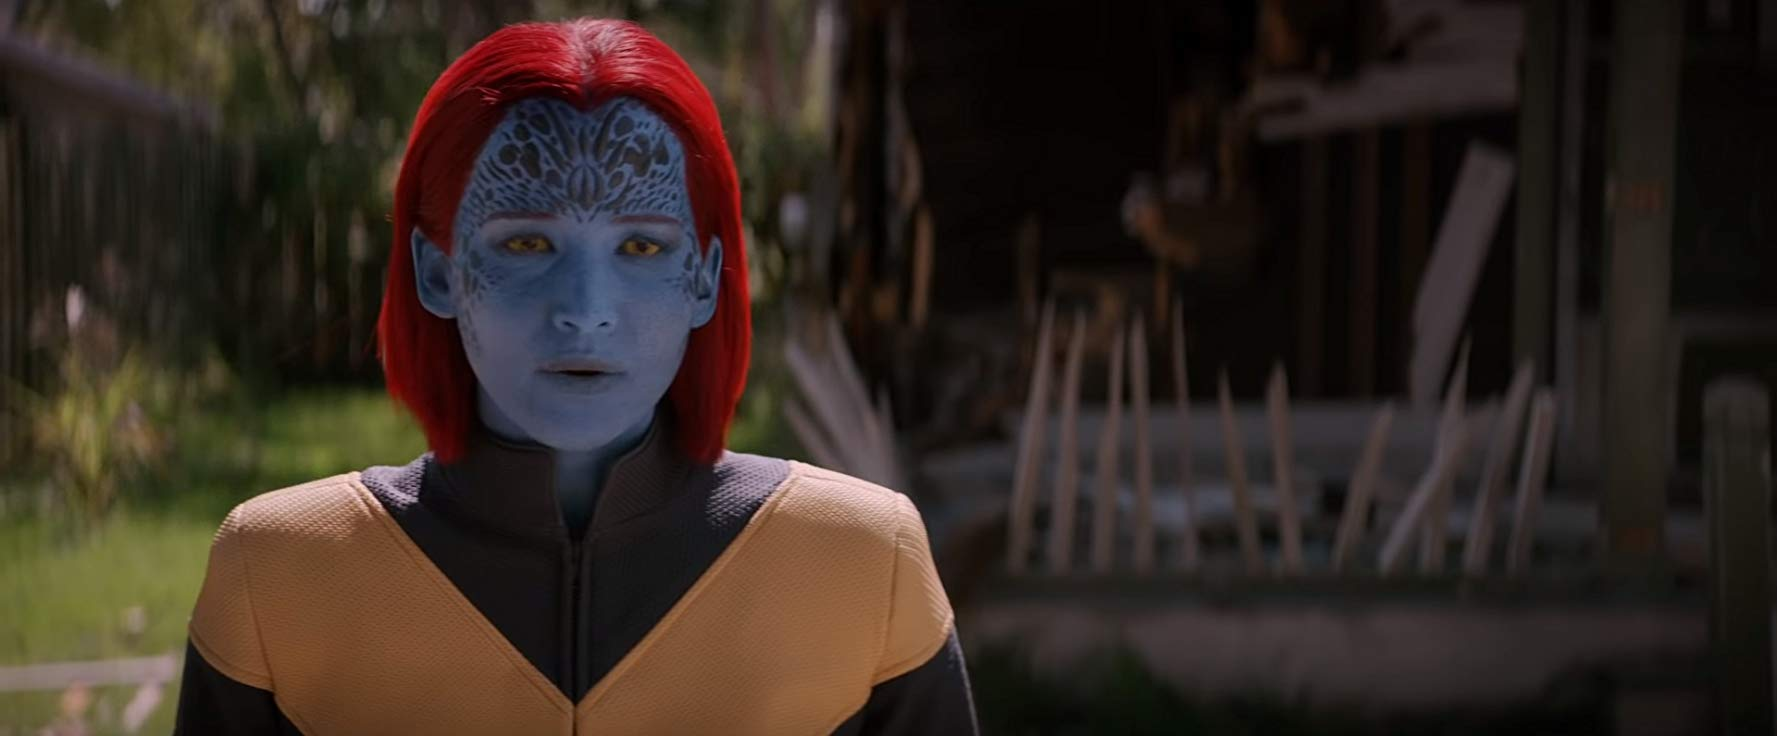 "Jennifer Lawrence in <a href=""https://entertainment.ie/cinema/movie-reviews/x-men-dark-phoenix-7257/"">X-Men: Dark Phoenix</a>"